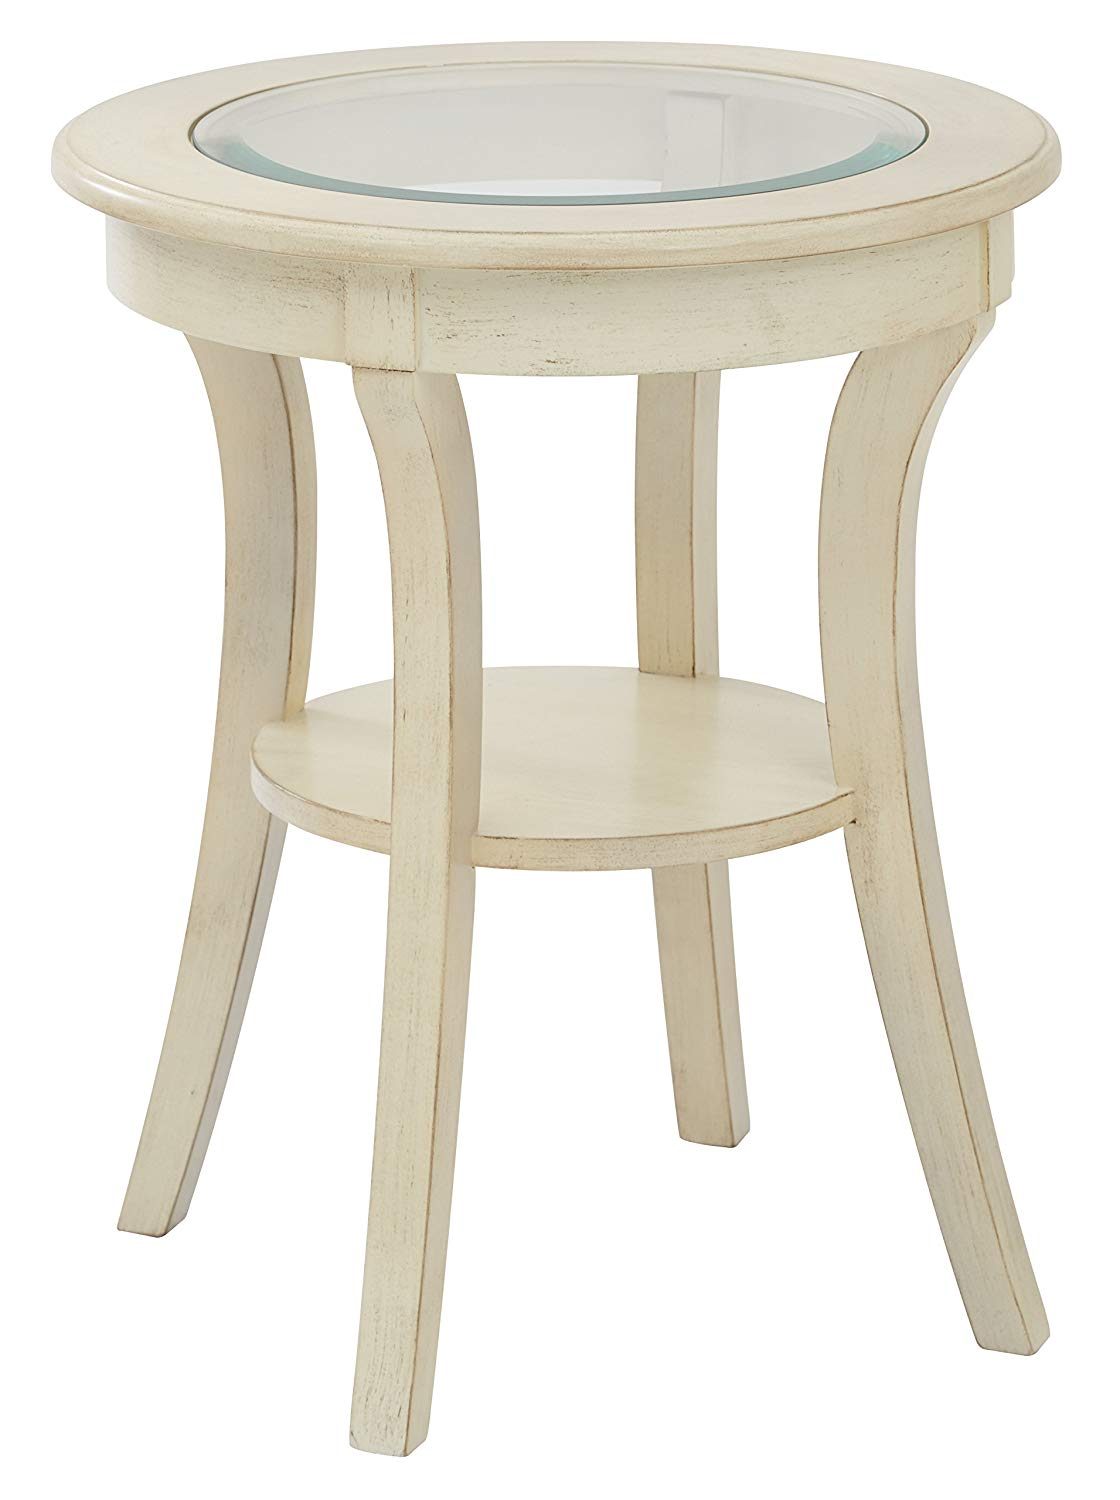 office star harper hand painted round accent table with wood and metal glass top antique white finish kitchen dining patio umbrella wine rack teal placemats napkins extra tall